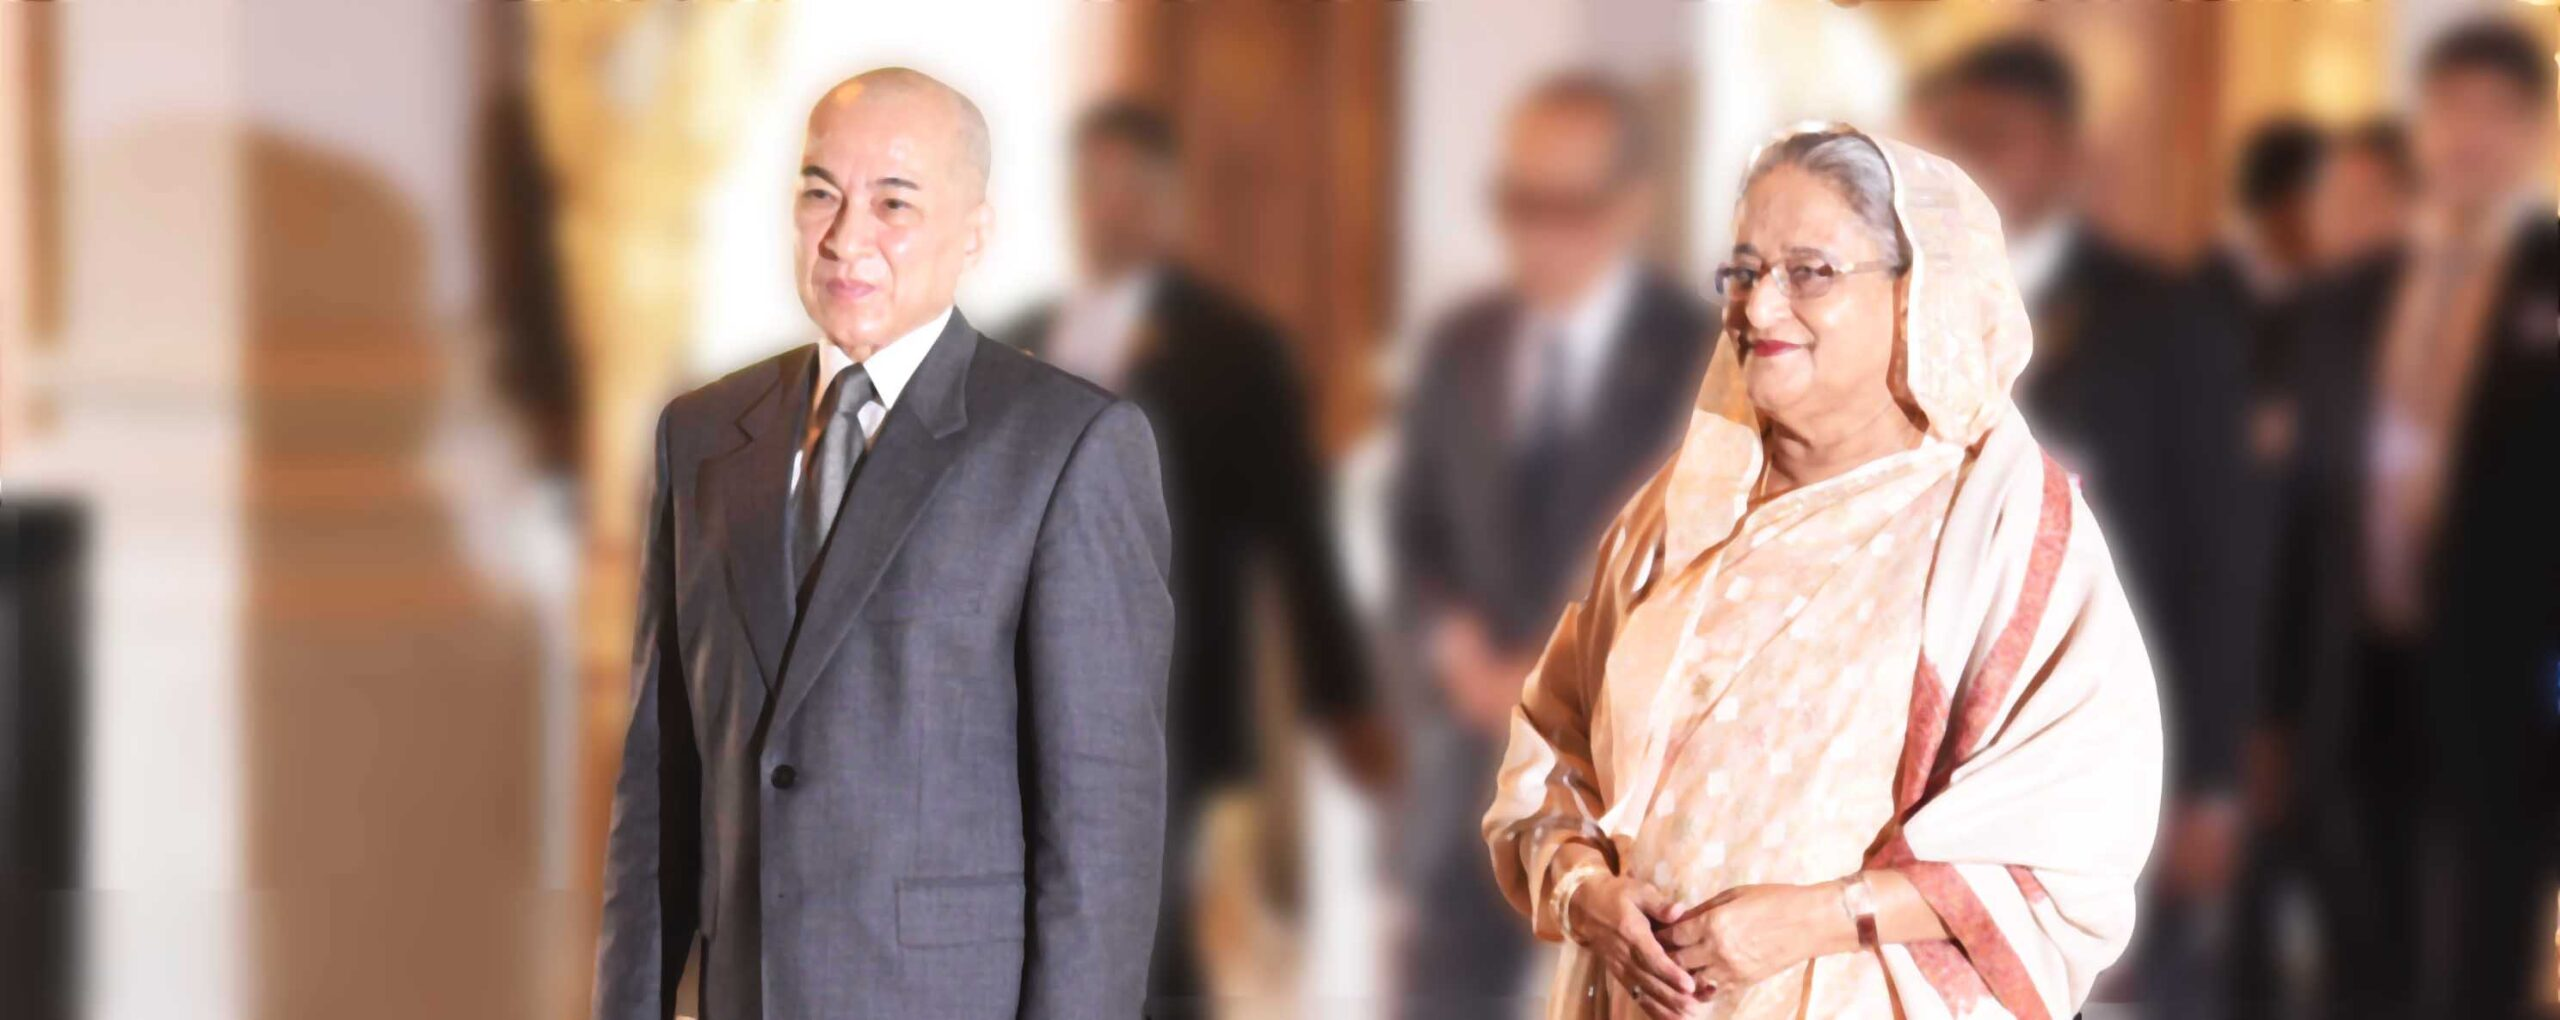 Hon'able Prime Minister Her Excellency Sheikh Hasina is greeted by His Majesty King Norodom Sihamoni during her visit to the Kingdom of Cambodia on 4 December 2017.